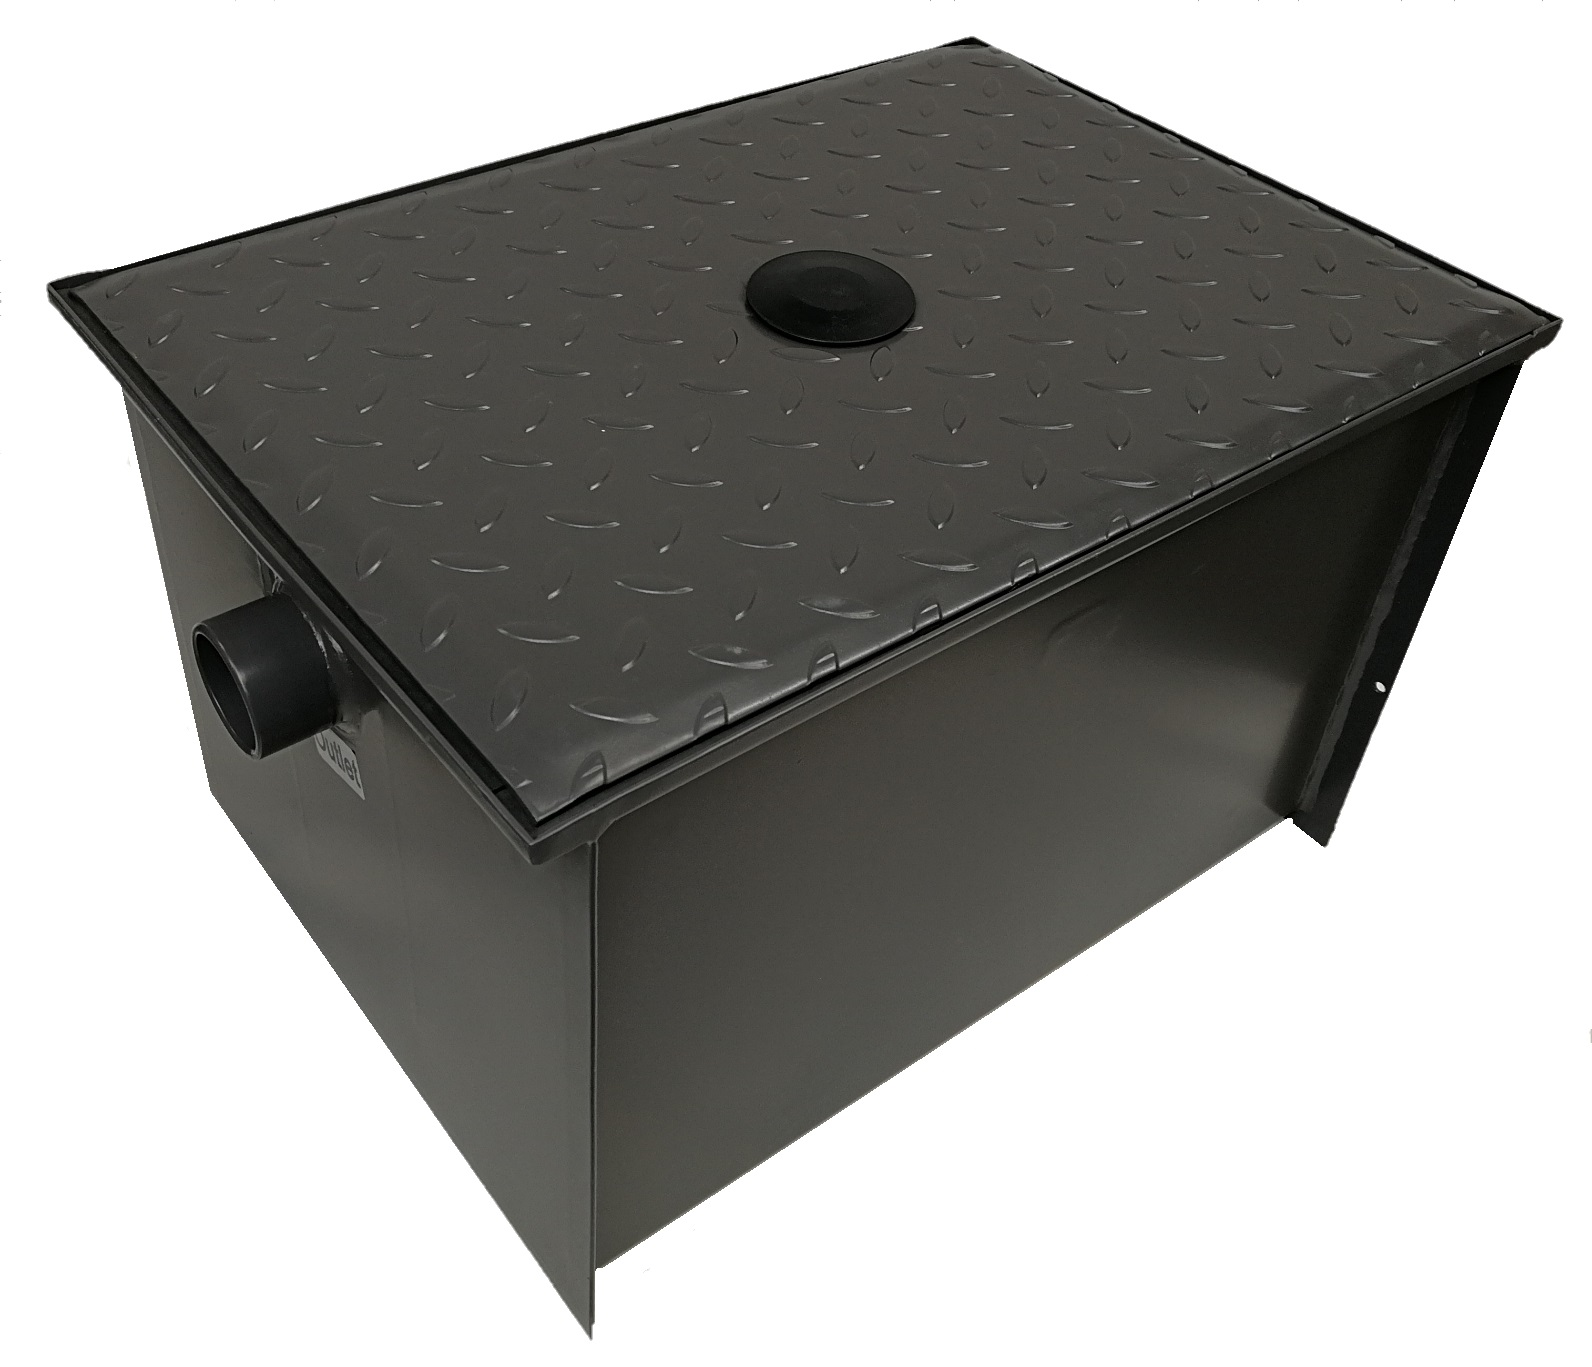 40 Ltr Superior Epoxy Coated Stainless Steel Grease Trap Diagram 2 Under The Sink